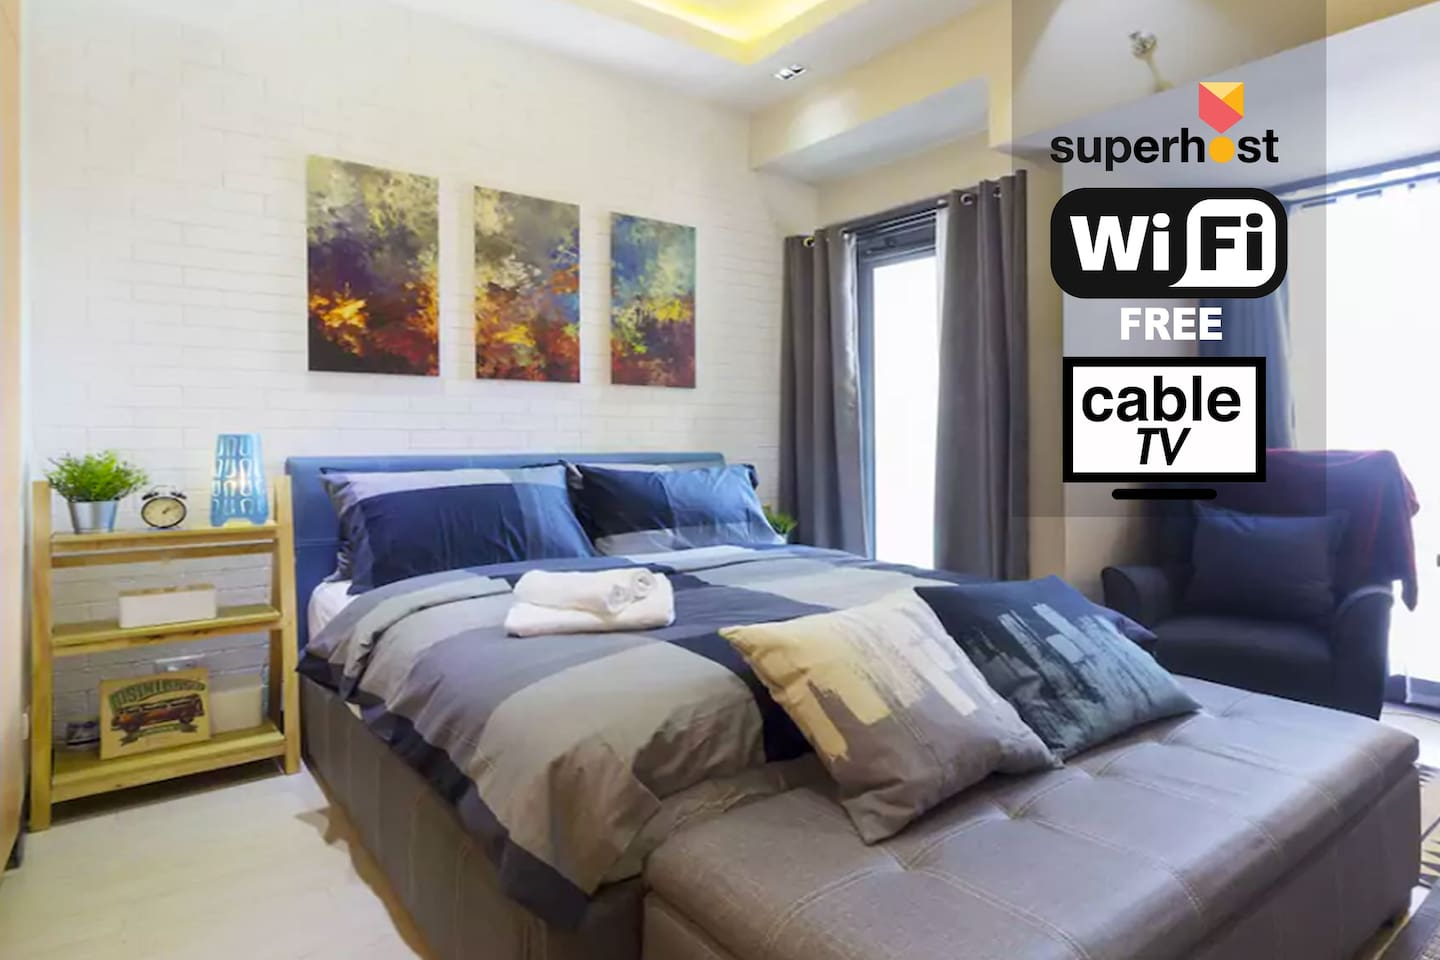 Hosted by an experienced and friendly AirBnB SUPERHOST, a well designed fully-furnished studio apartment situated in the most-sought address in Manila. Ready to cater business travelers, tourists and stop-over travelers, your HOME away from HOME!